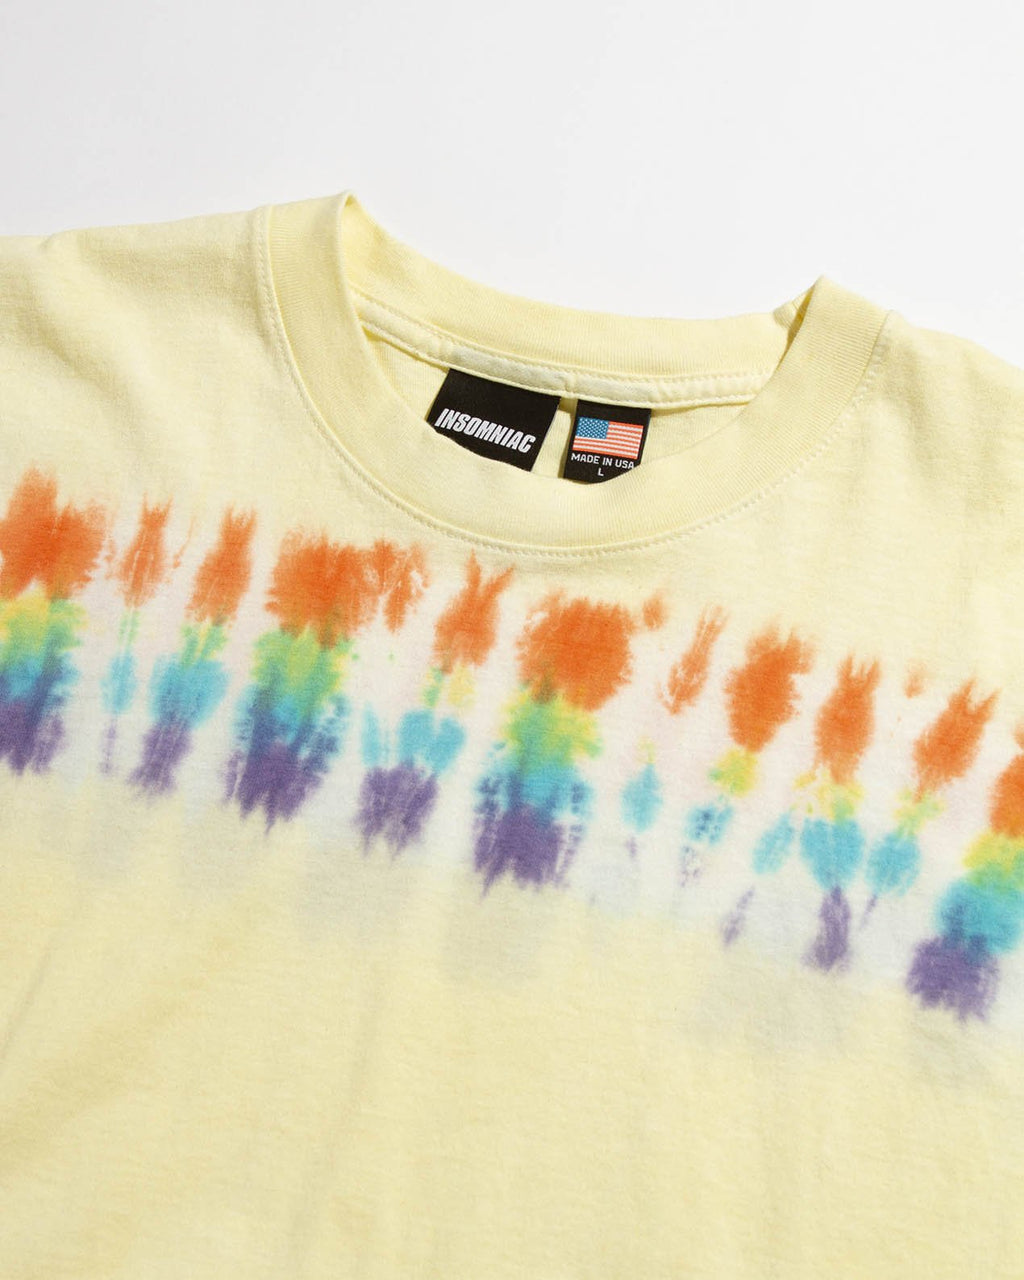 KALEIDARAINBOW T YELLOW